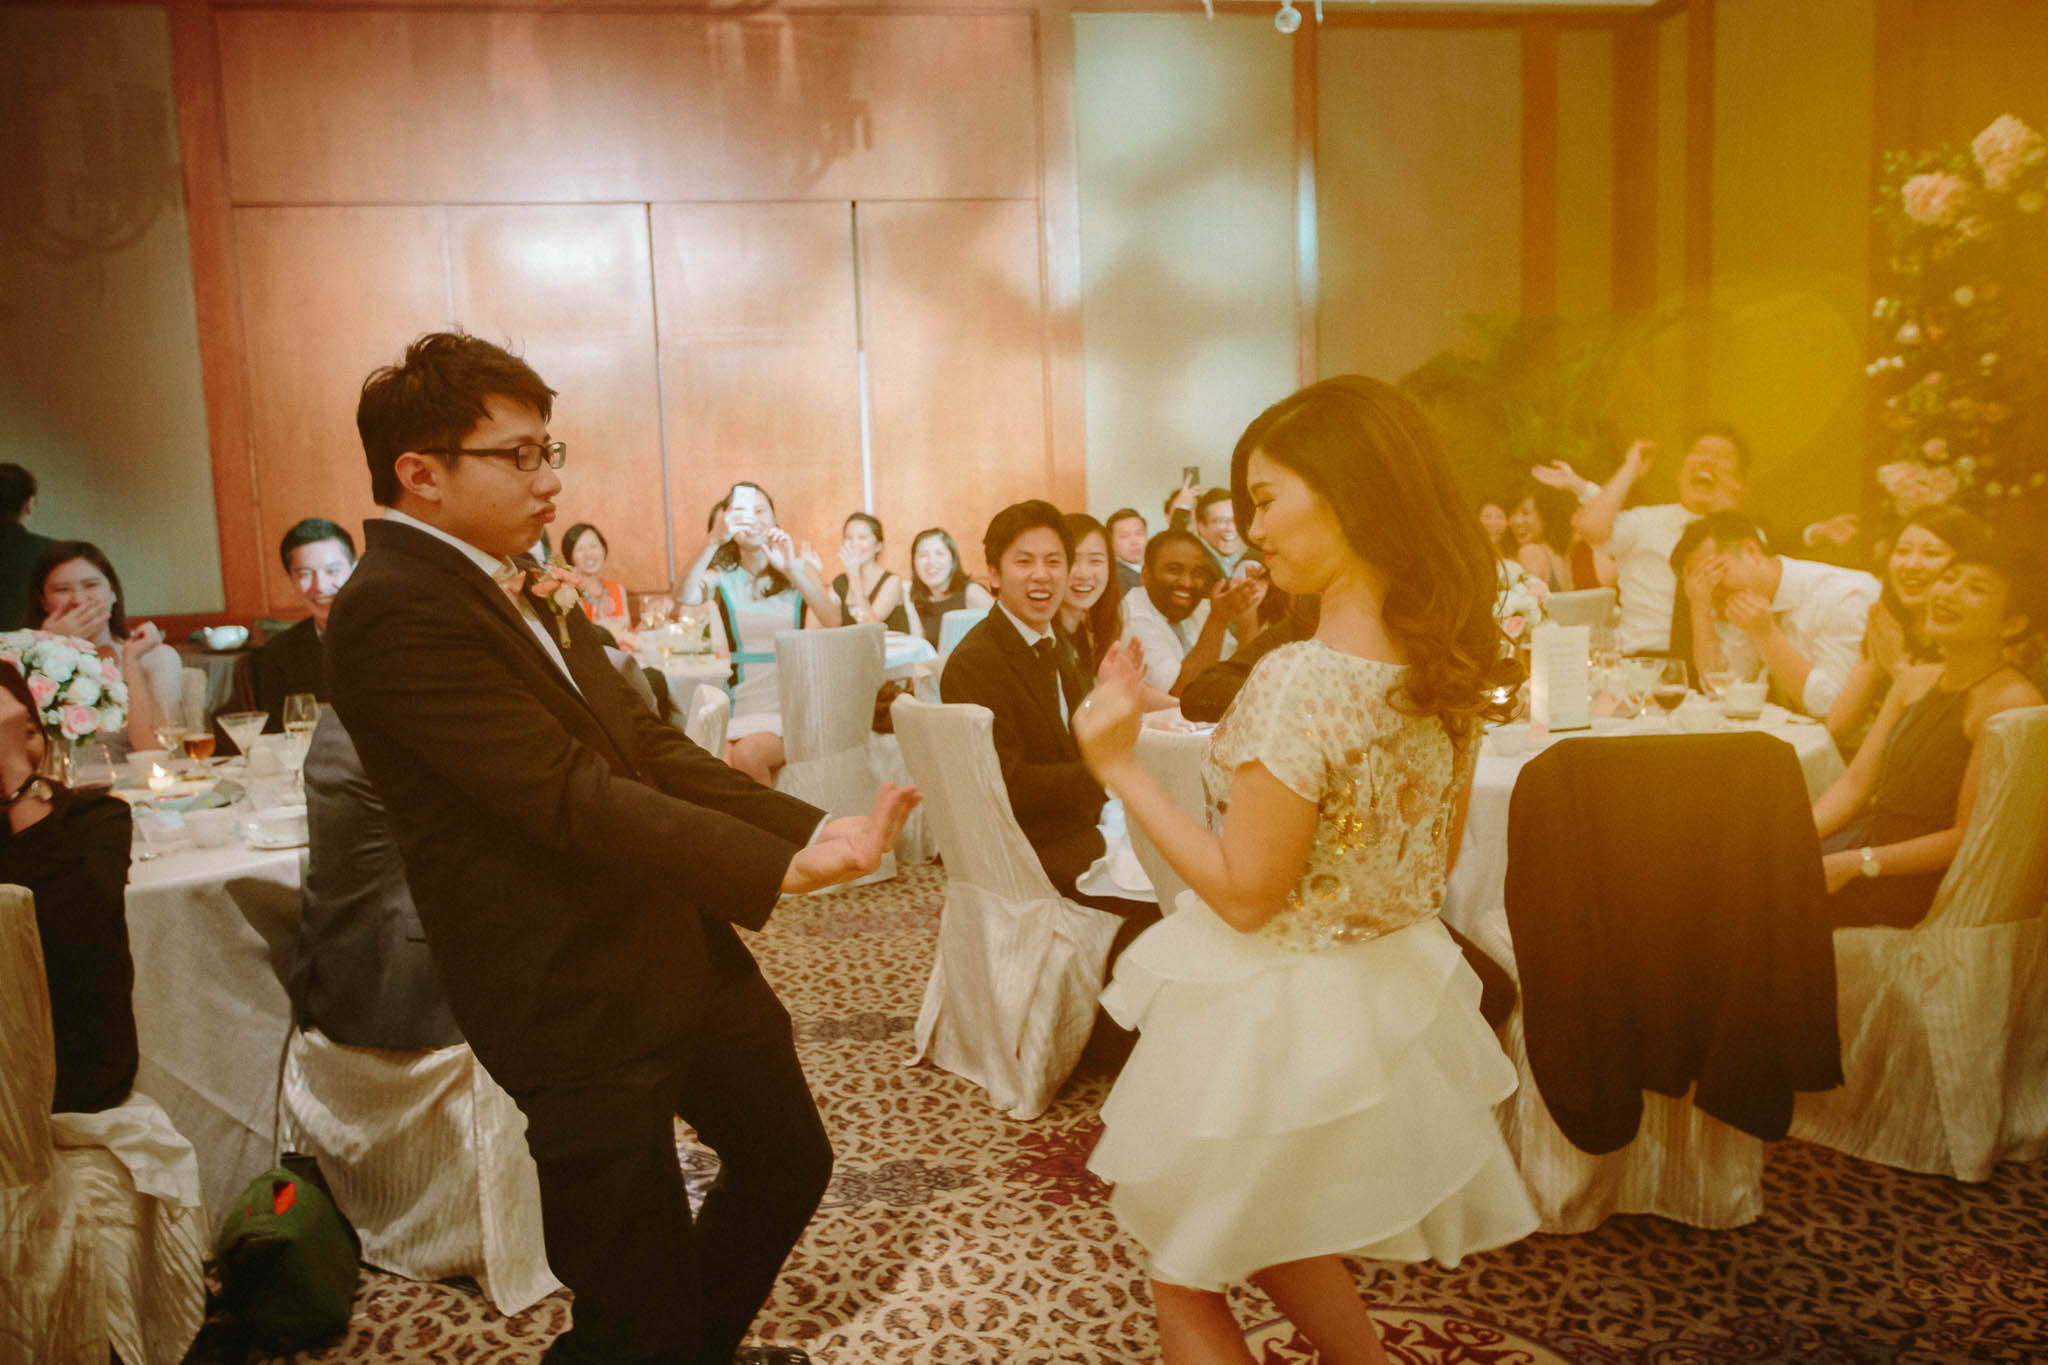 singapore-wedding-photographer-pre-wedding-ashley-sean-073.jpg